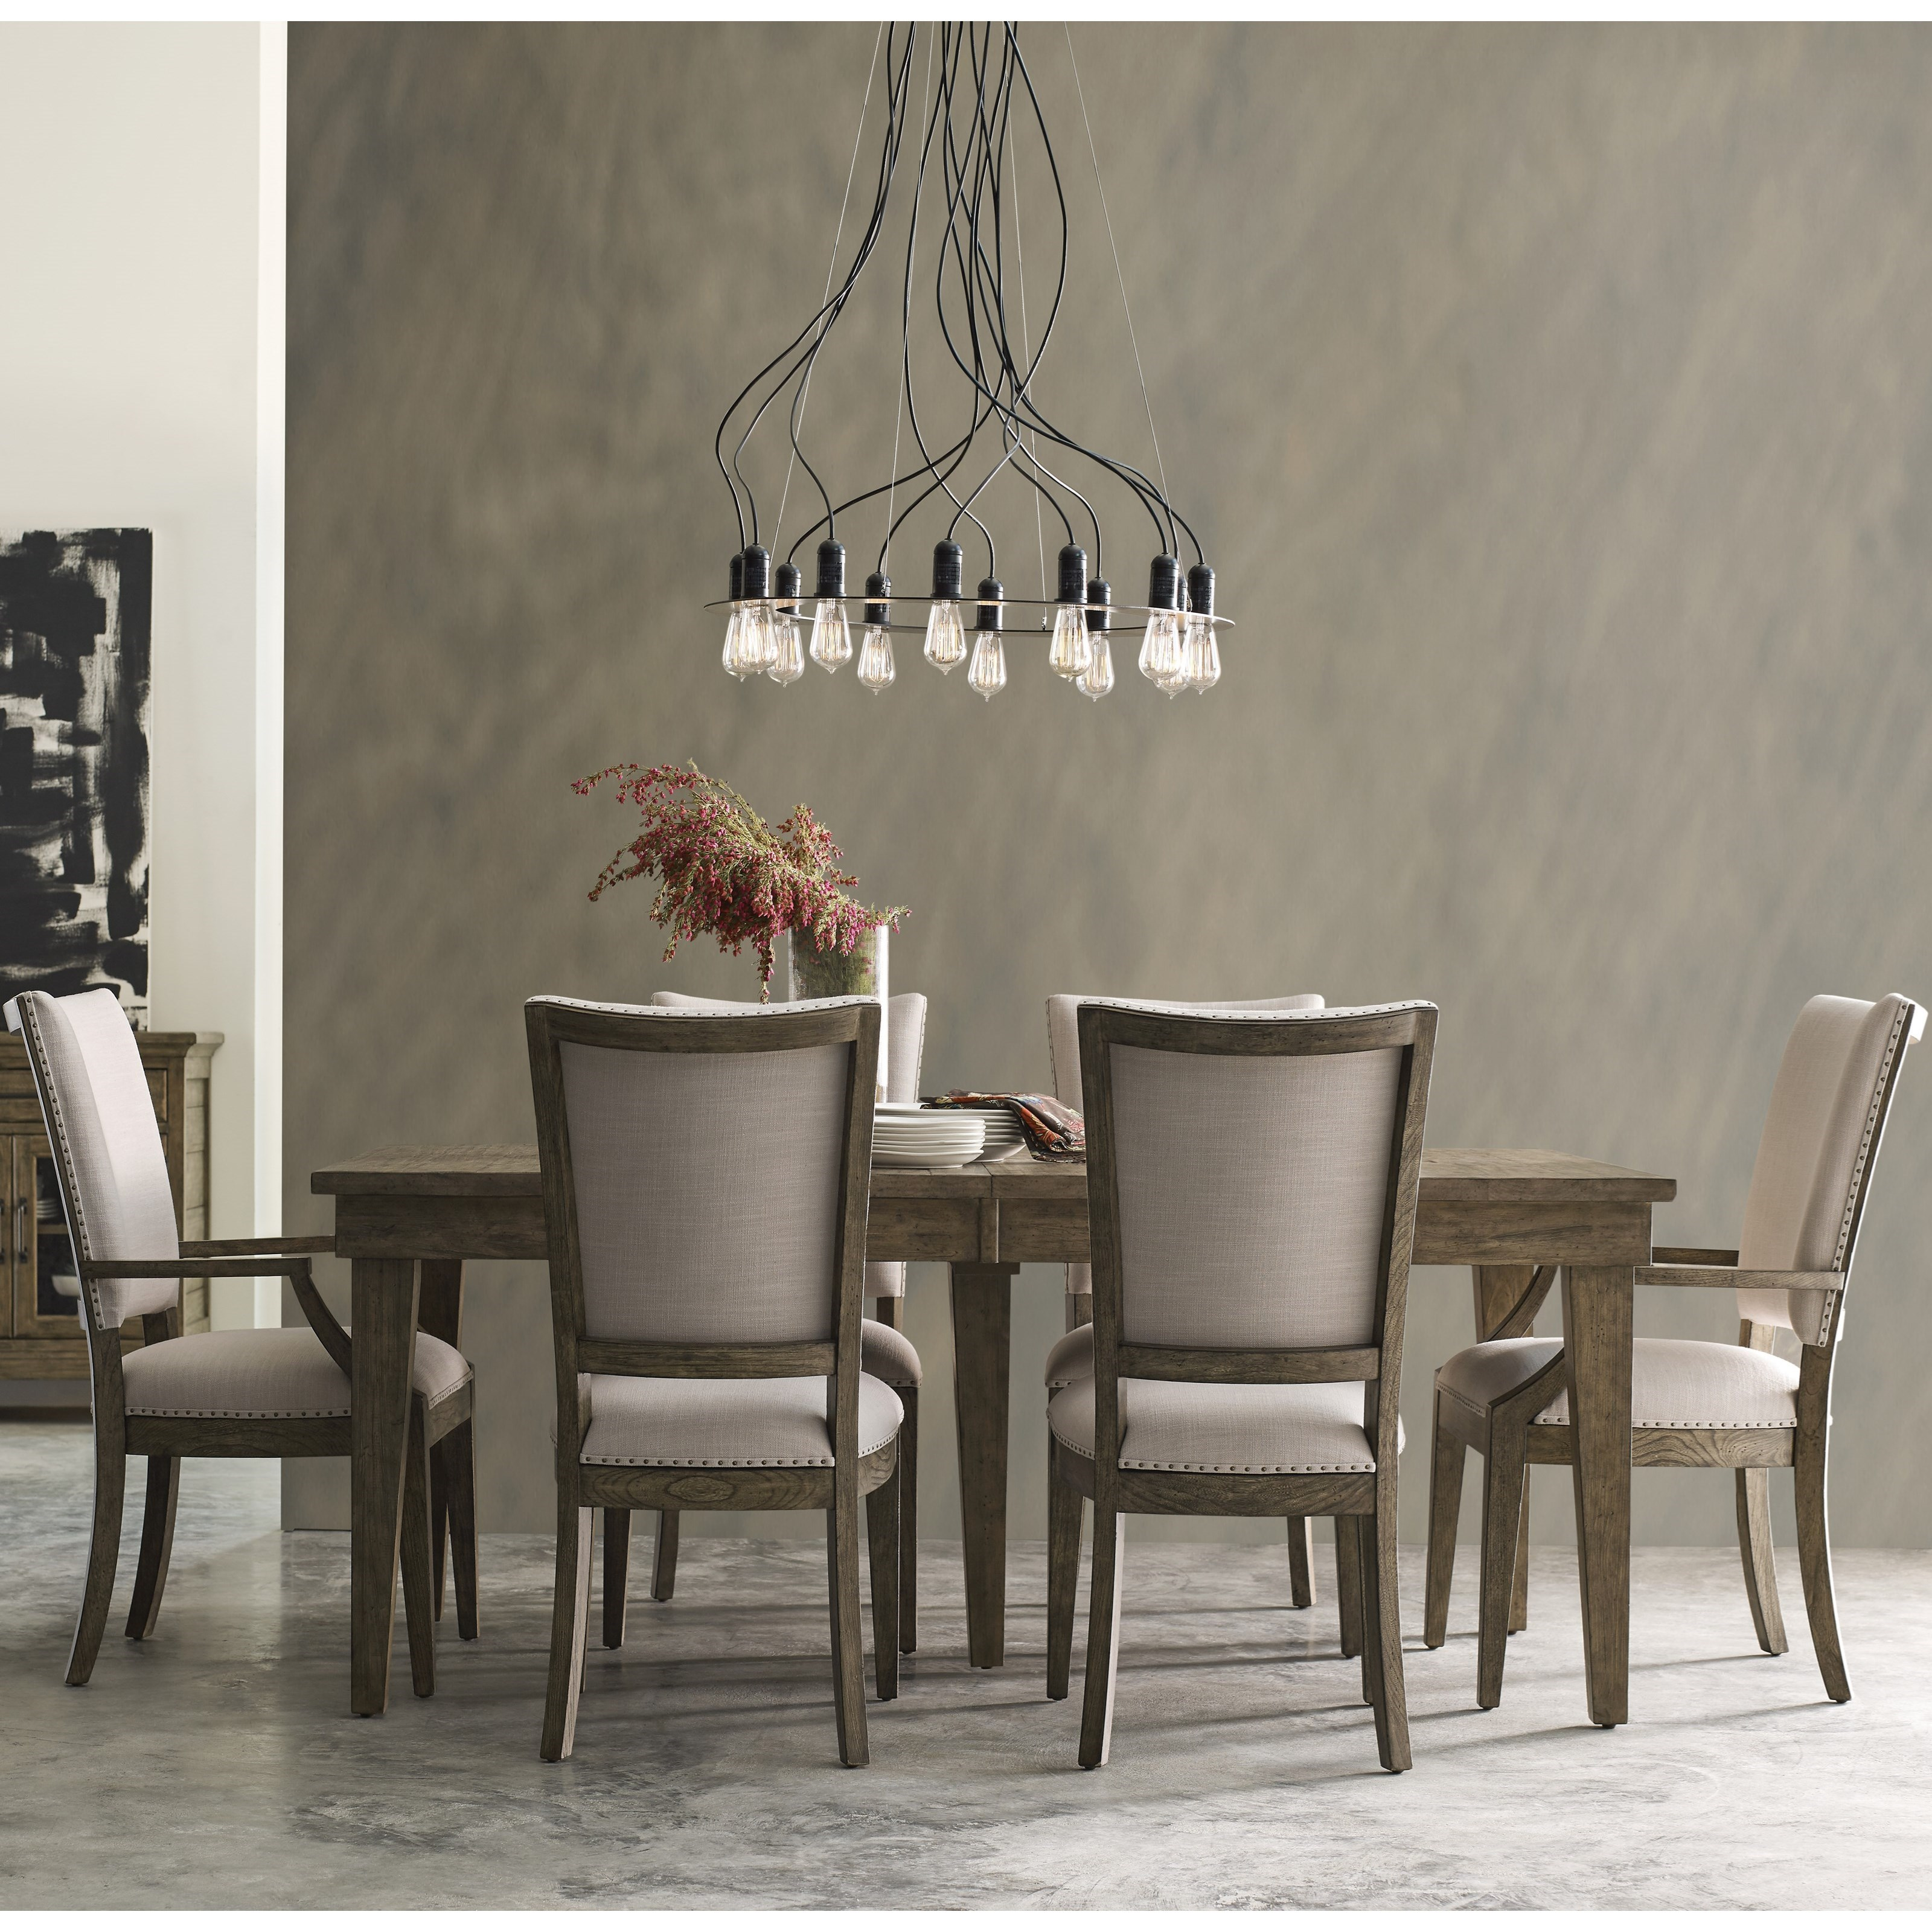 7 Pc Dining Set w/ Rankin Table